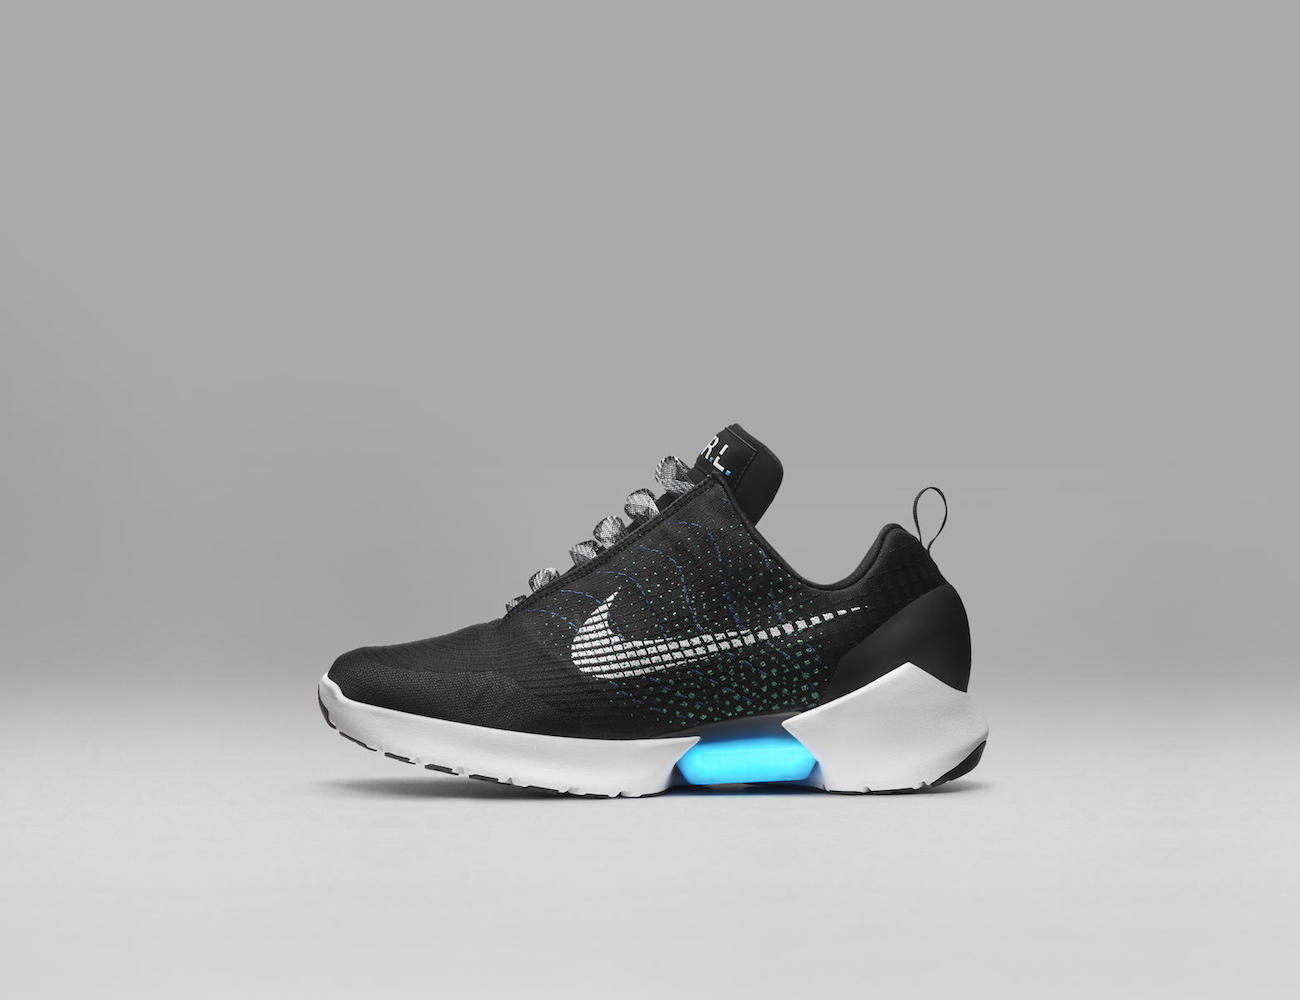 ... Hyperadapt 1.0 Self-Tying Sneakers by Nike ...